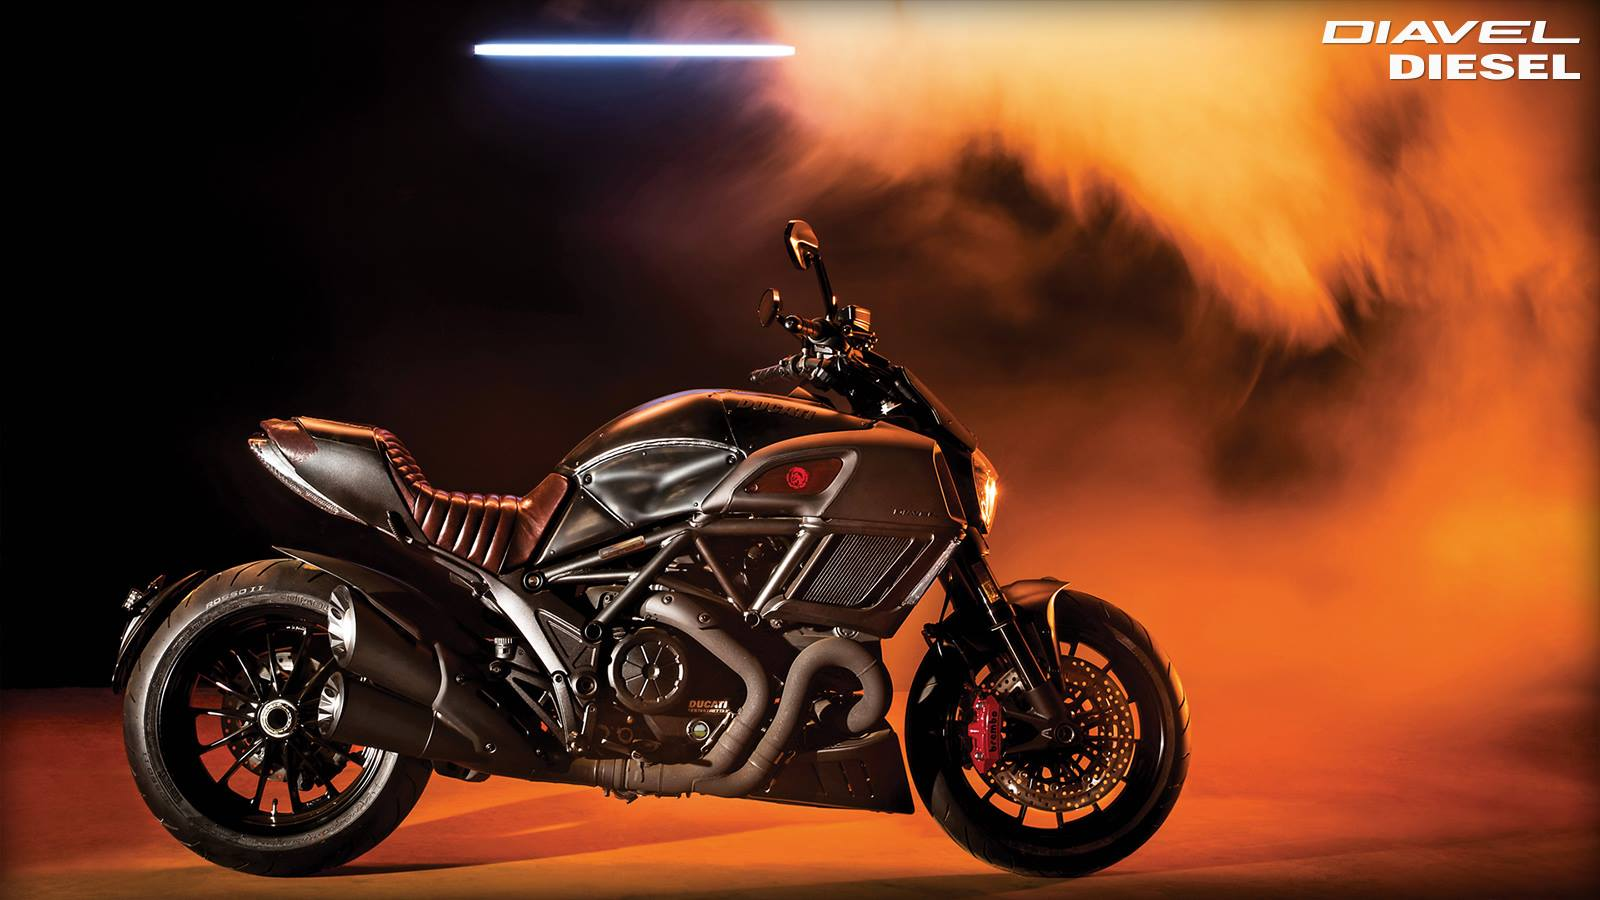 Ducati Diavel Diesel - 2017 - side-face / profil